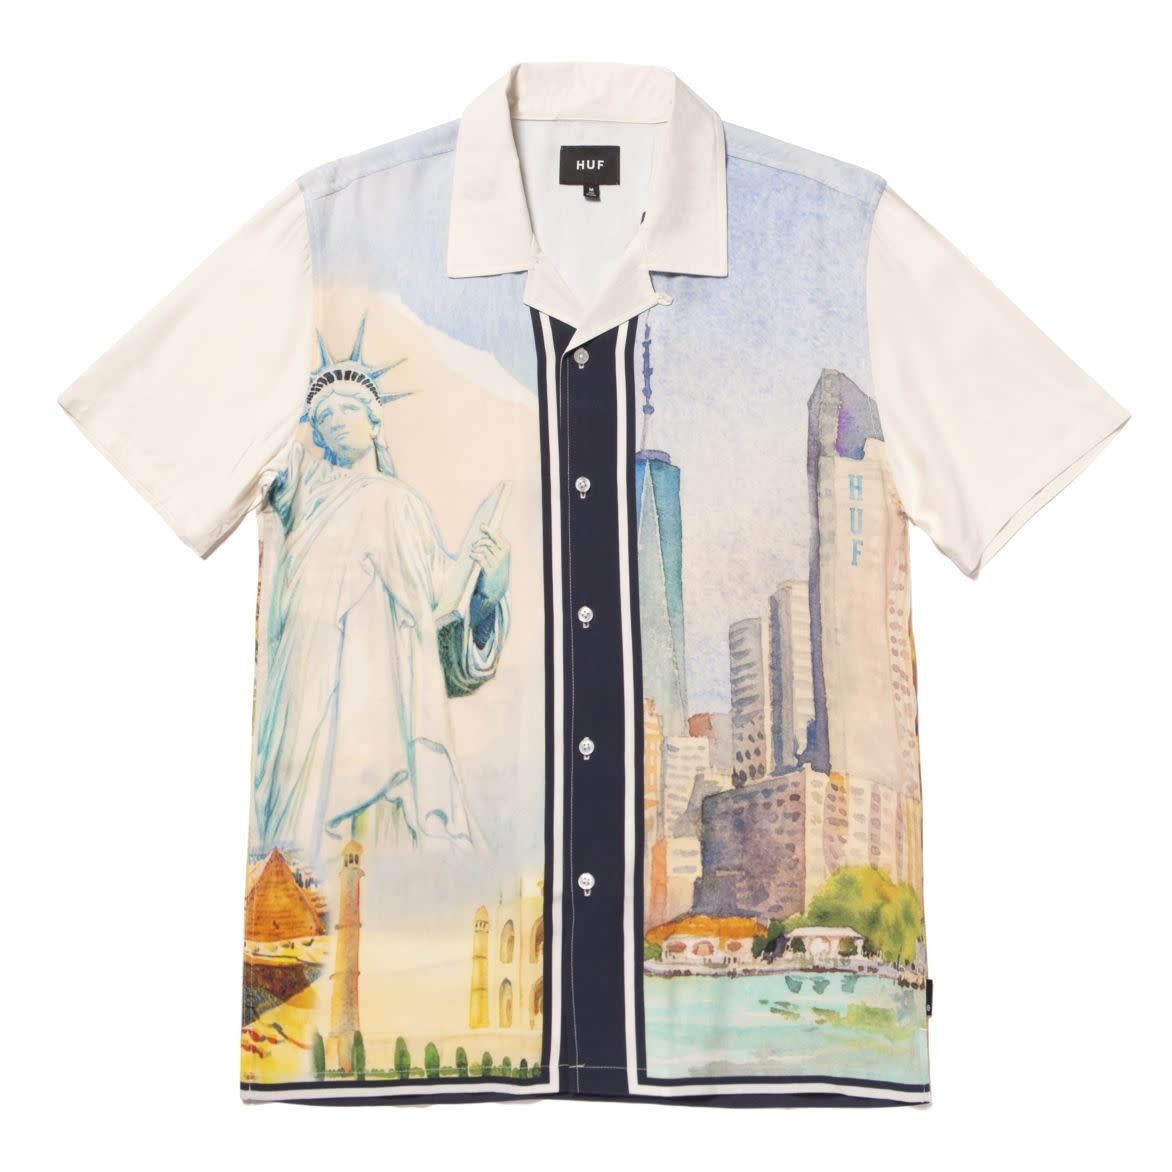 HUF Prestige Resort Shirt White